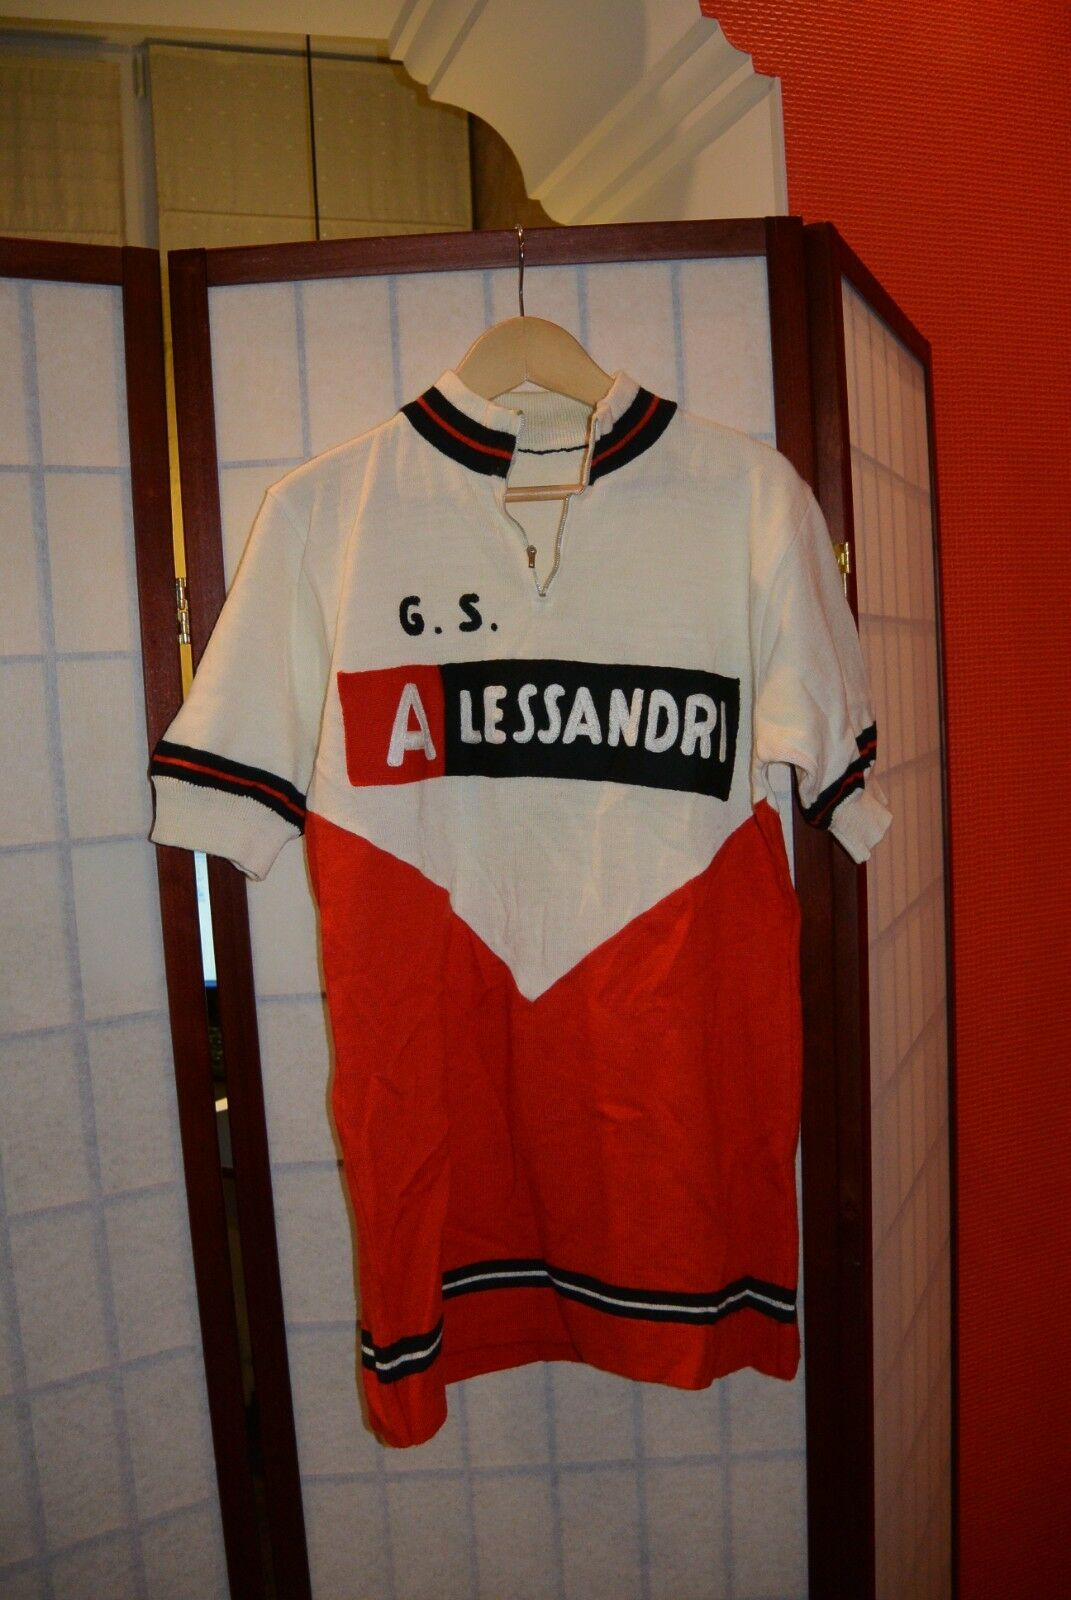 G.S. Alessandri  60's old vintage cycling jersey S-M  sale online discount low price